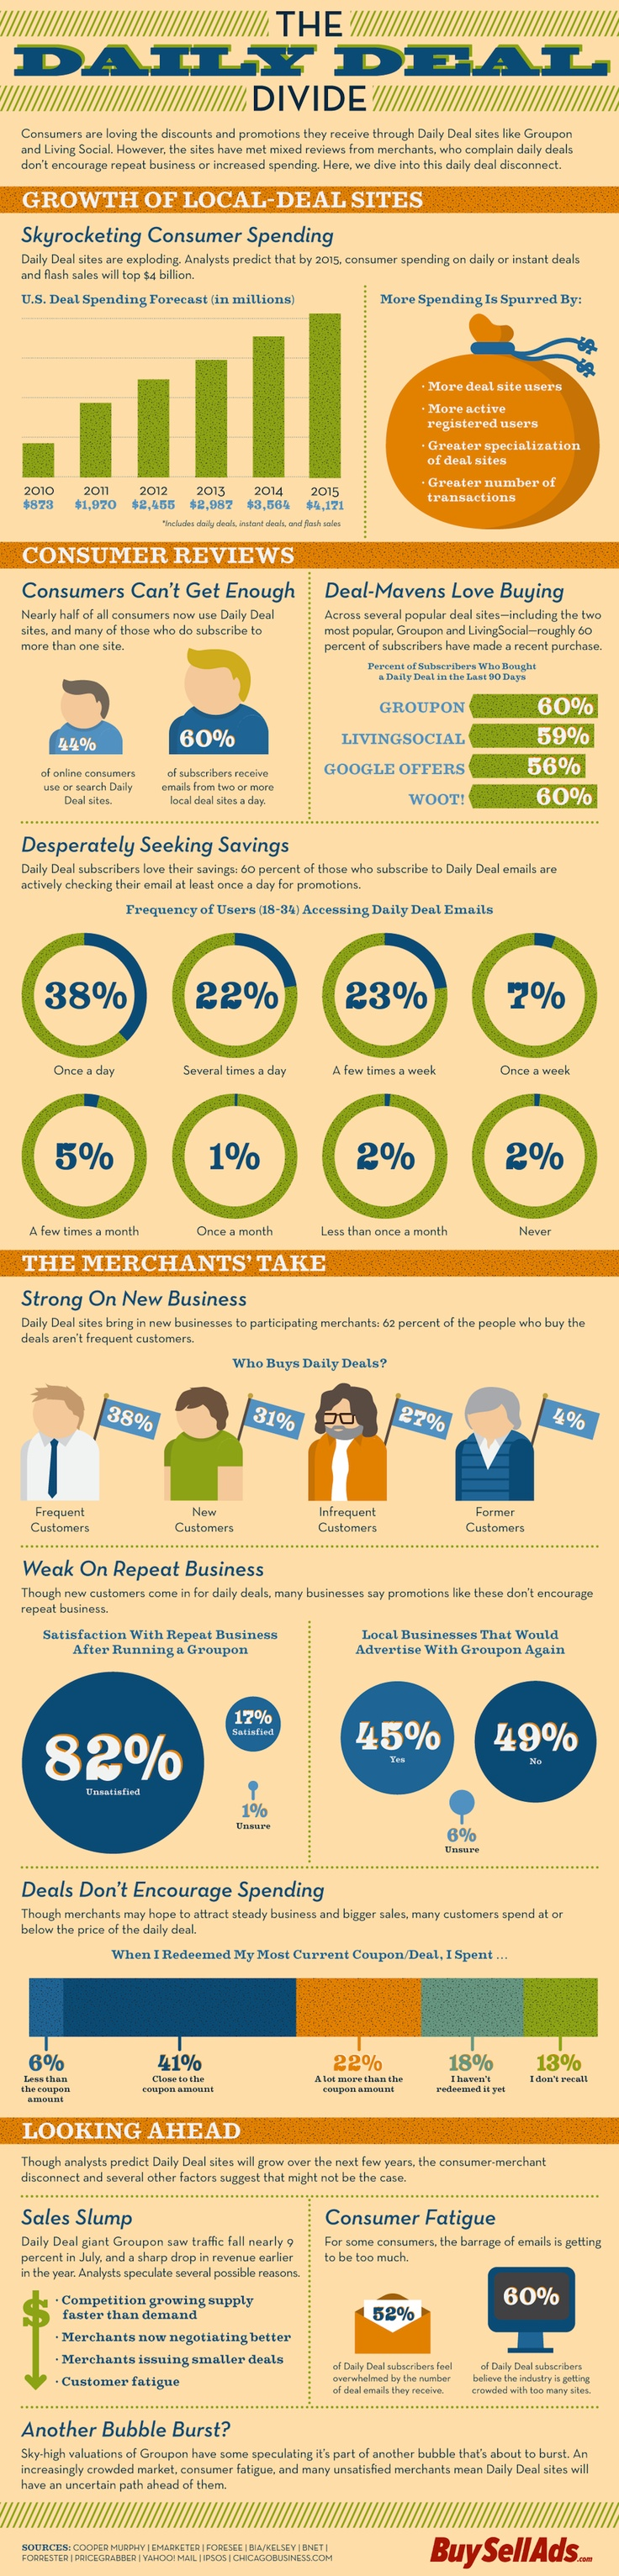 Daily deal divide #infographic (from 2011)